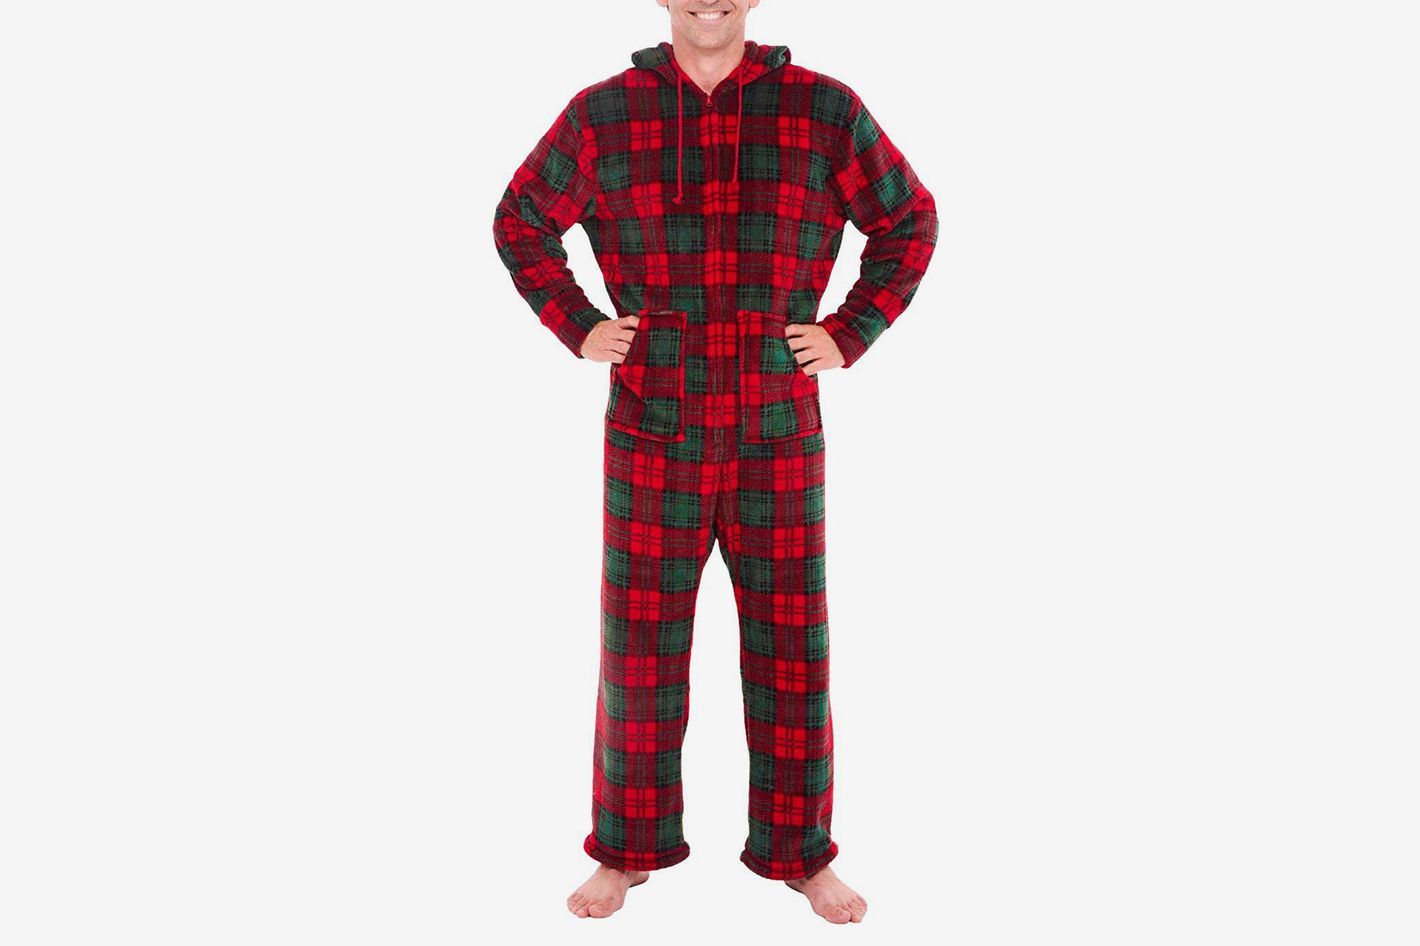 Christmas Pajama Onesies.16 Best Christmas Onesies 2018 The Strategist New York